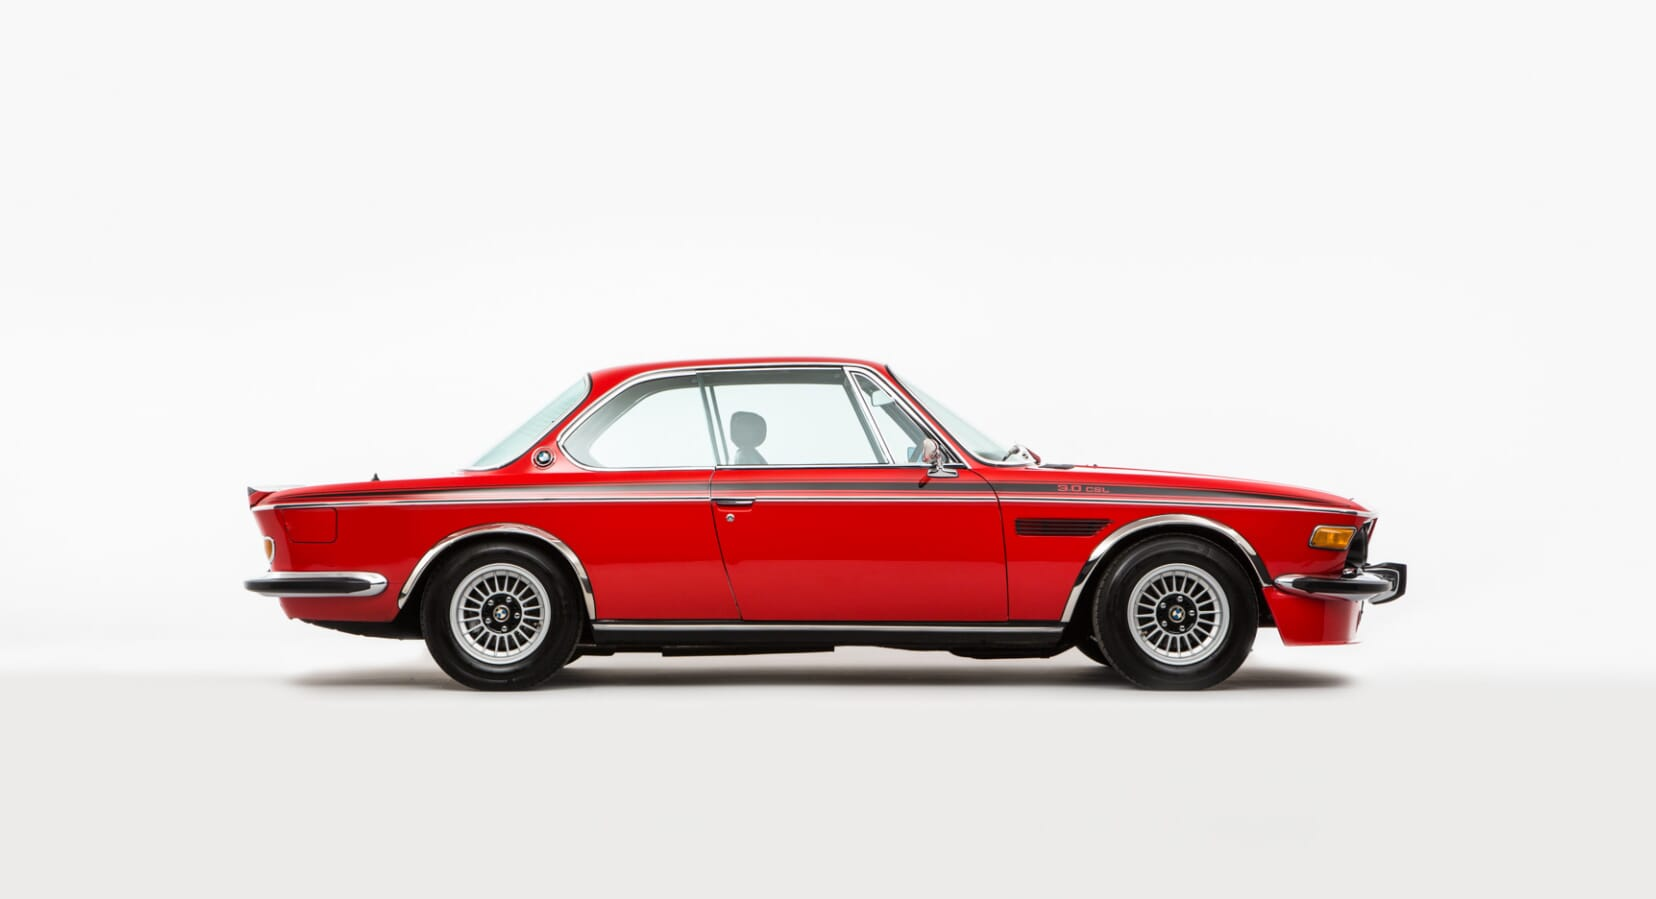 Classic Car Find of the Week: BMW 3.0 CSL 'Batmobile'